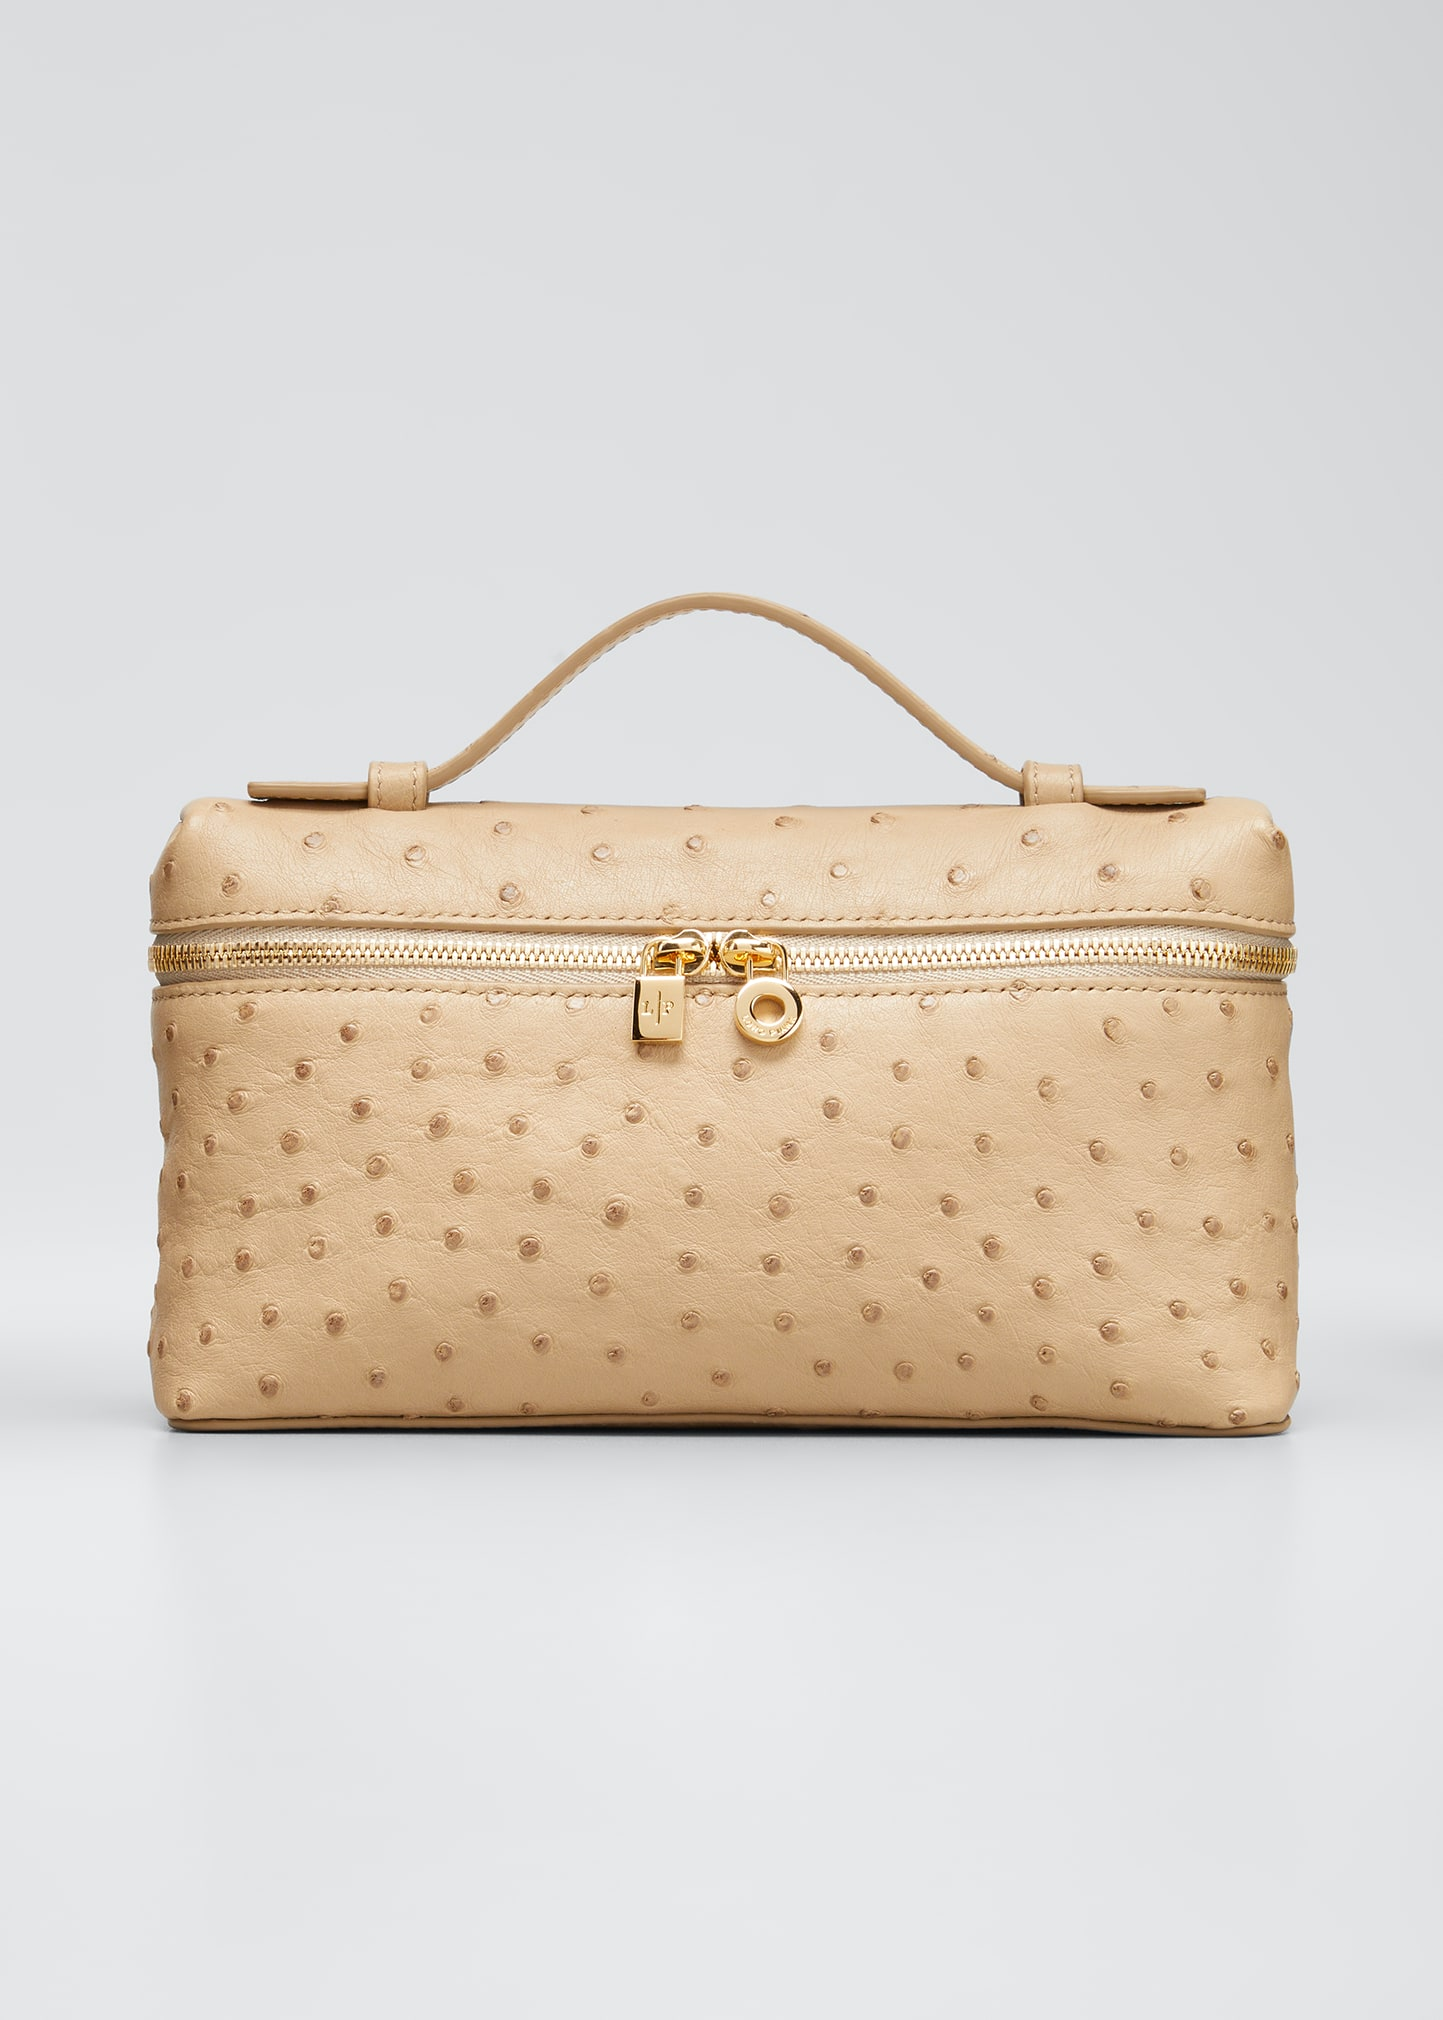 L19 Ostrich Crossbody Bag with Extra Pocket by Loro Piana, available on neimanmarcus.com for $2875 Gigi Hadid Bags Exact Product